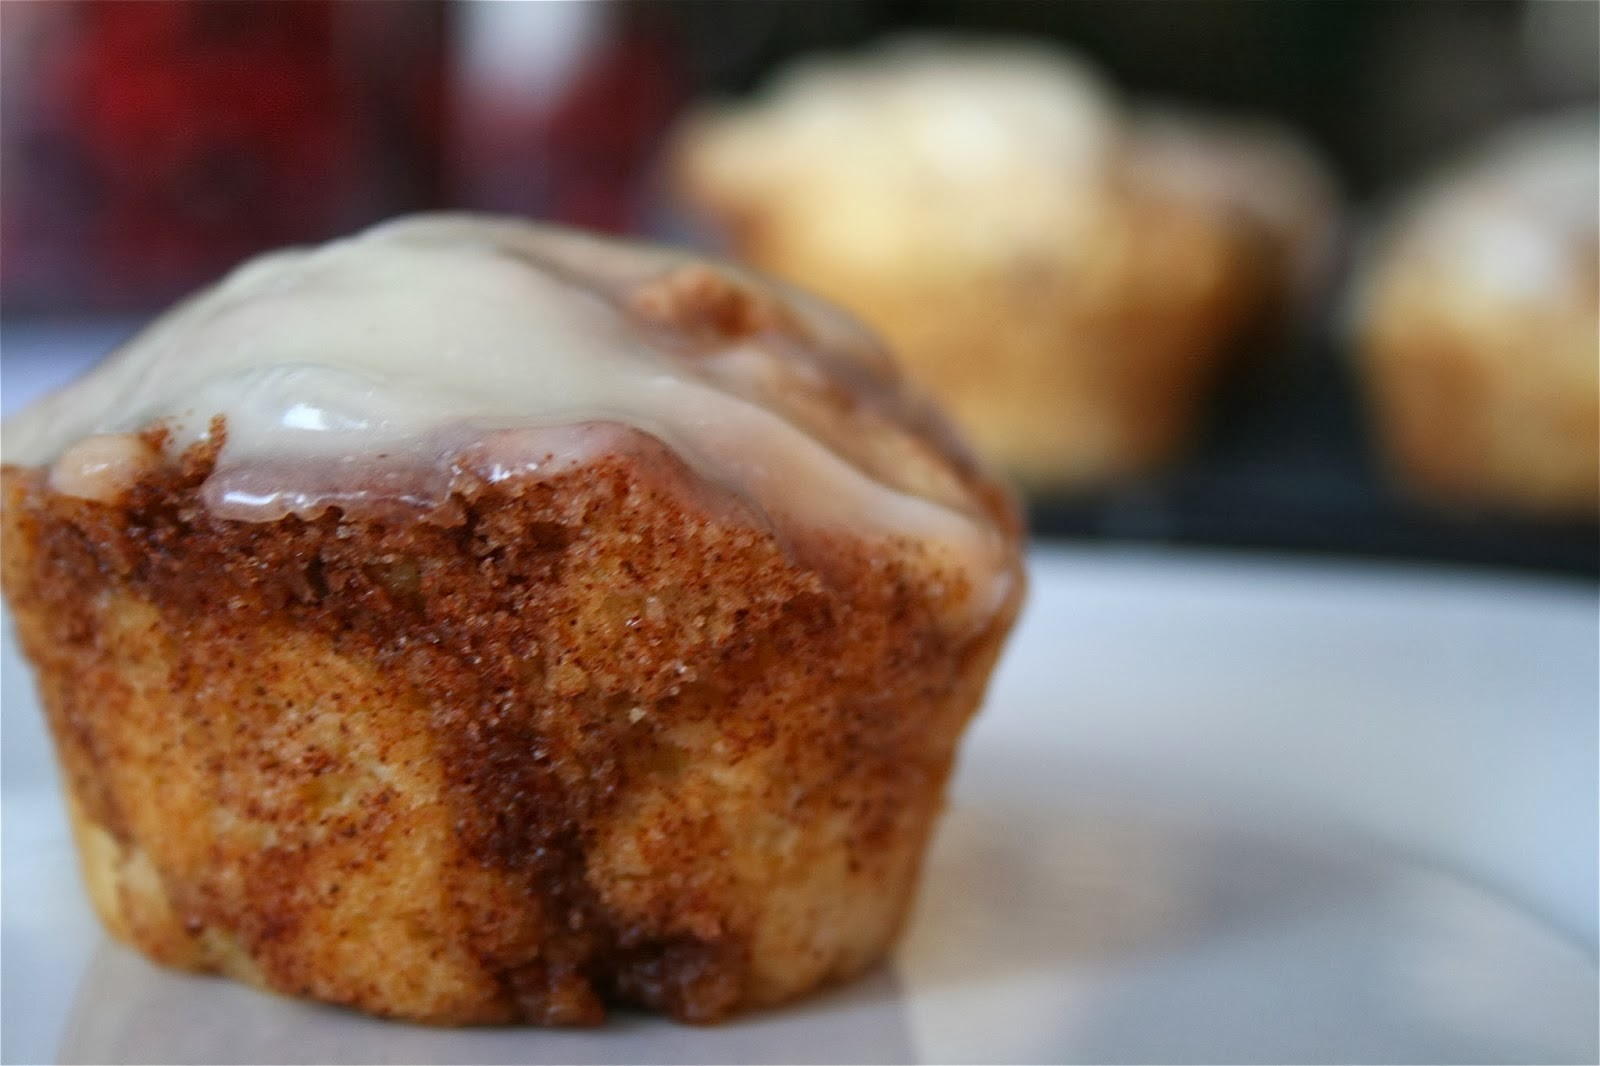 Cinnamon Swirl Muffins with Cream Cheese Glaze